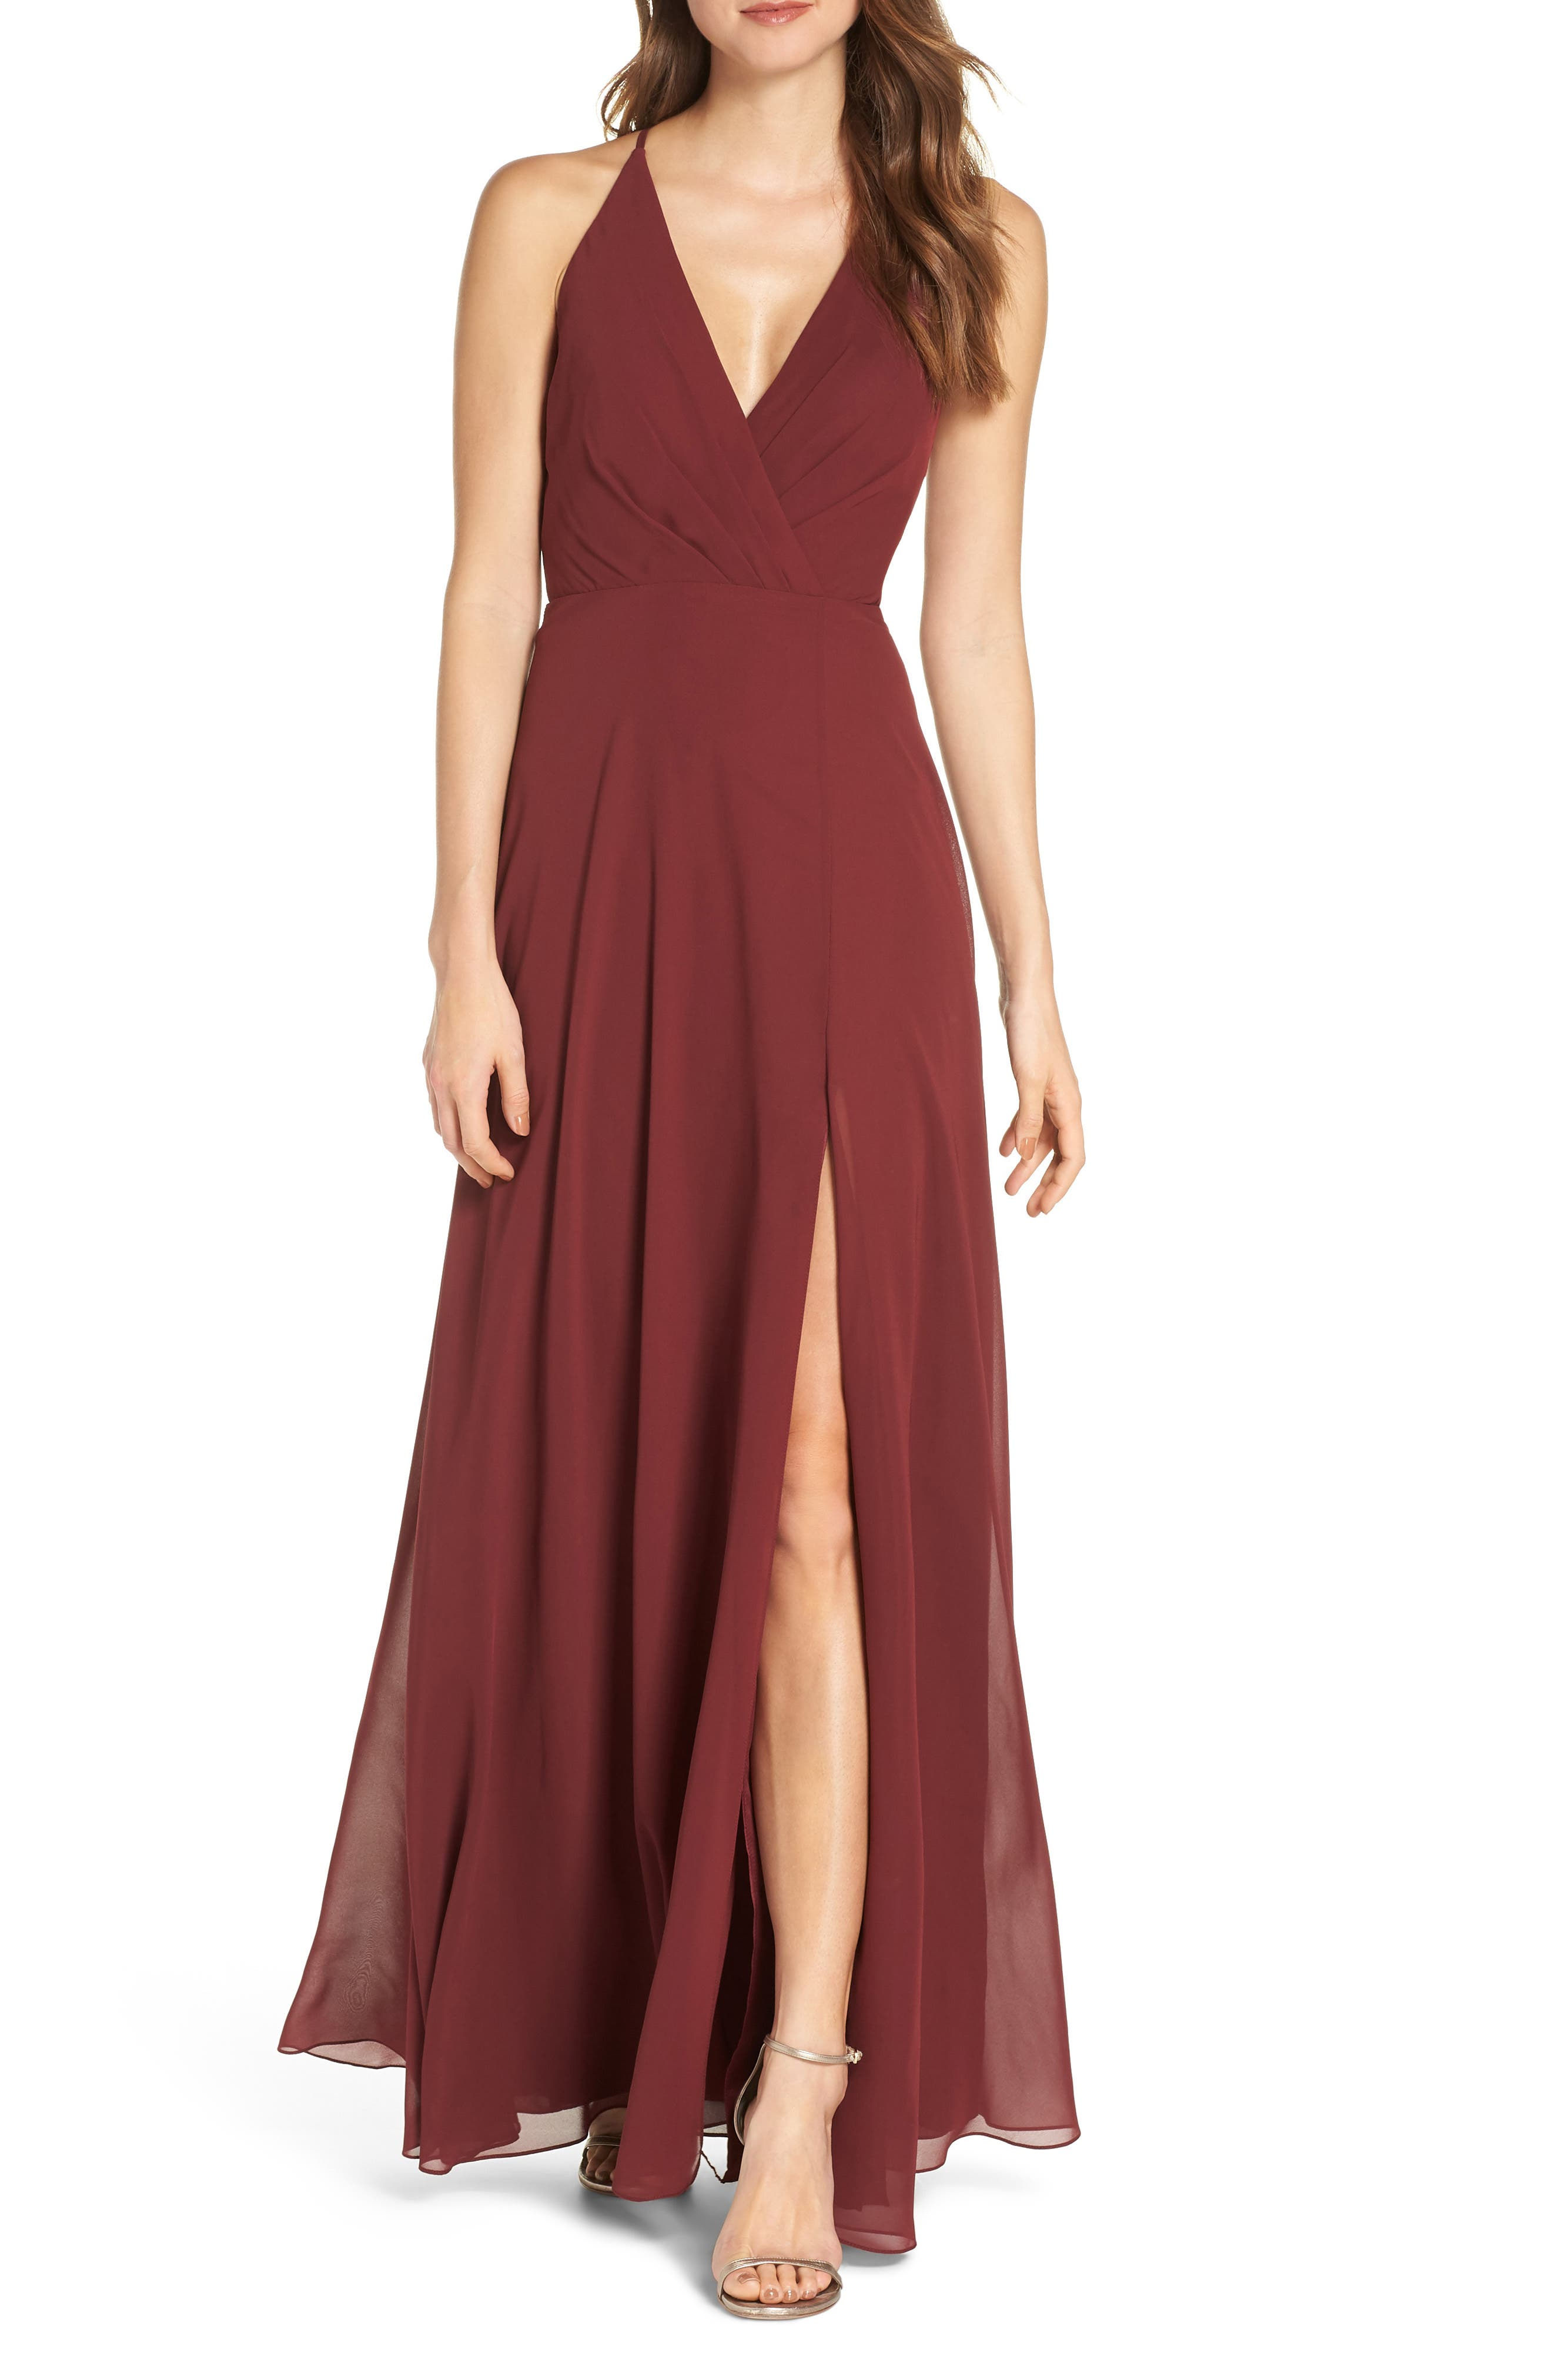 Jenny Yoo Bryce Surplice V-Neck Chiffon Evening Dress, Red